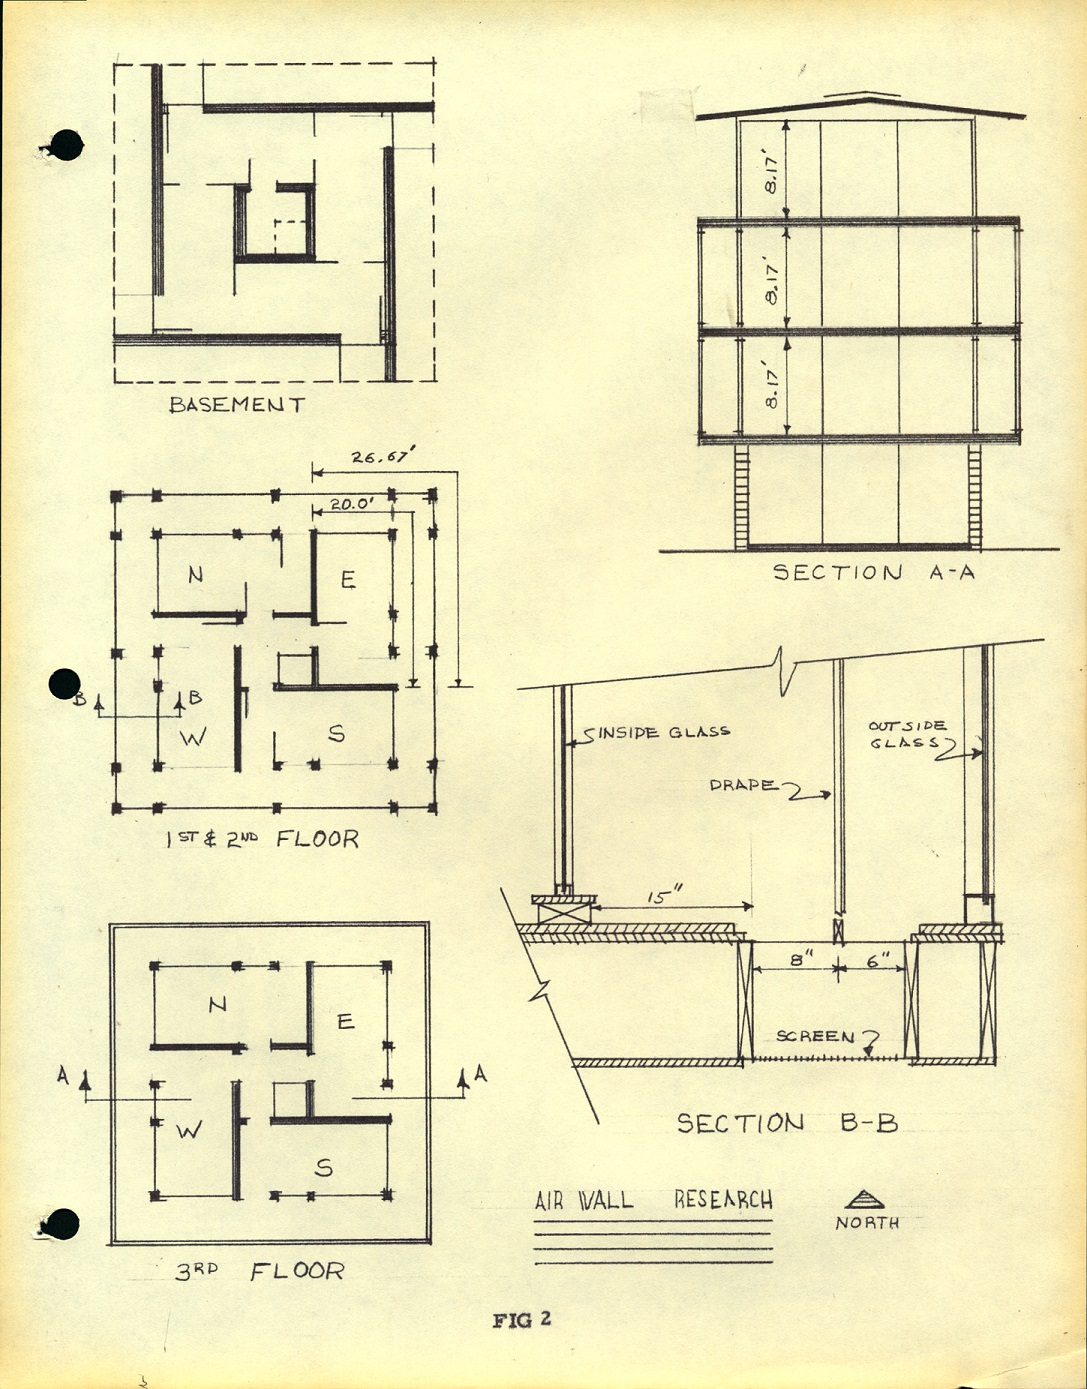 architecture sketches of house with plans of basement, three floors, and cross sections